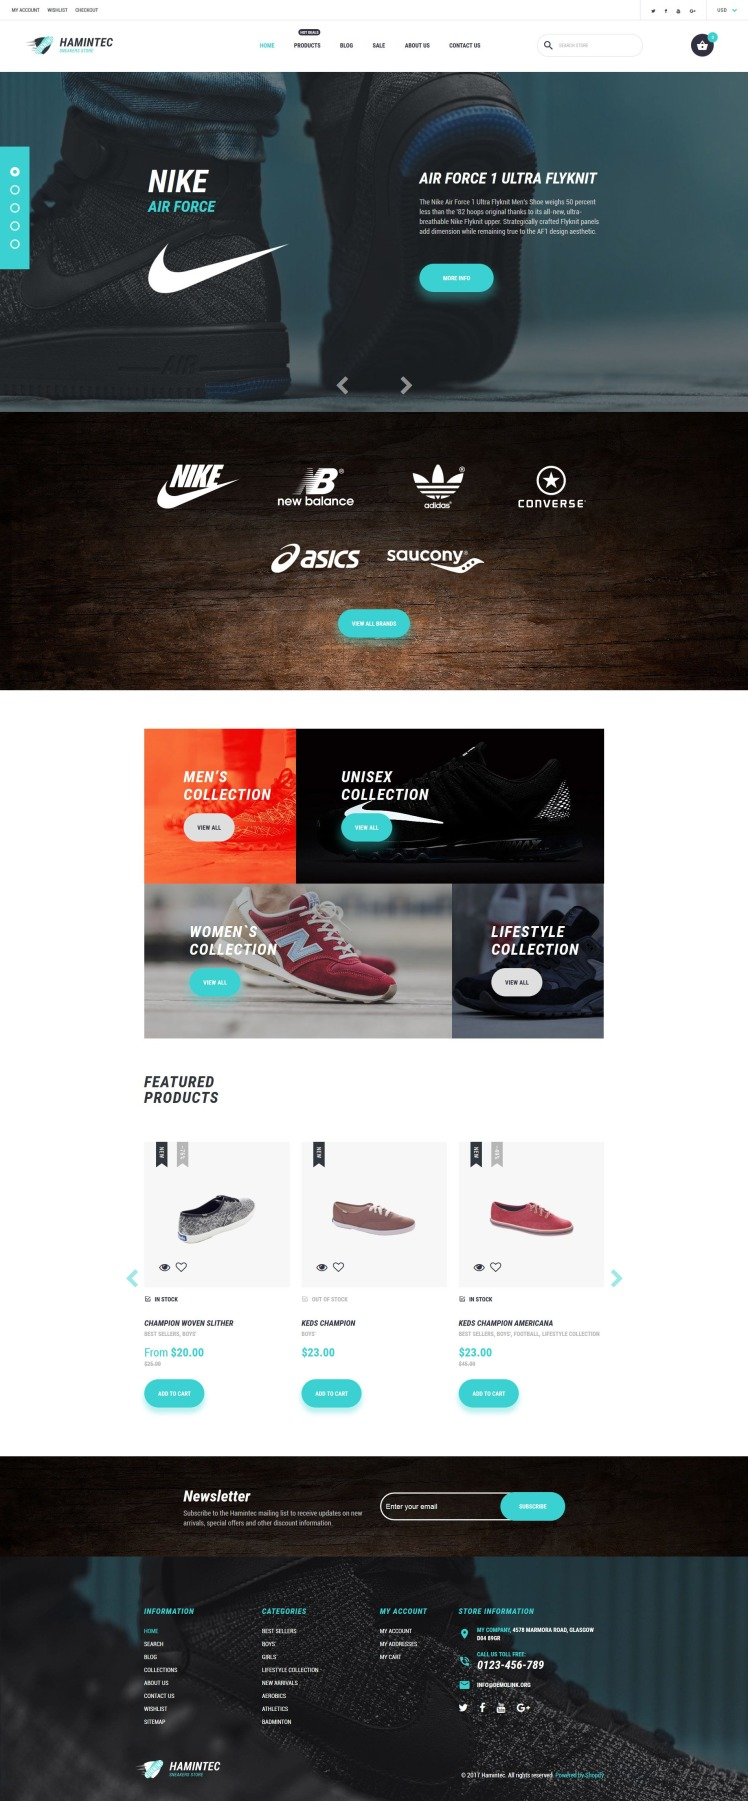 Hamintec Luxury Quality Sneakers Store Shopify Themes